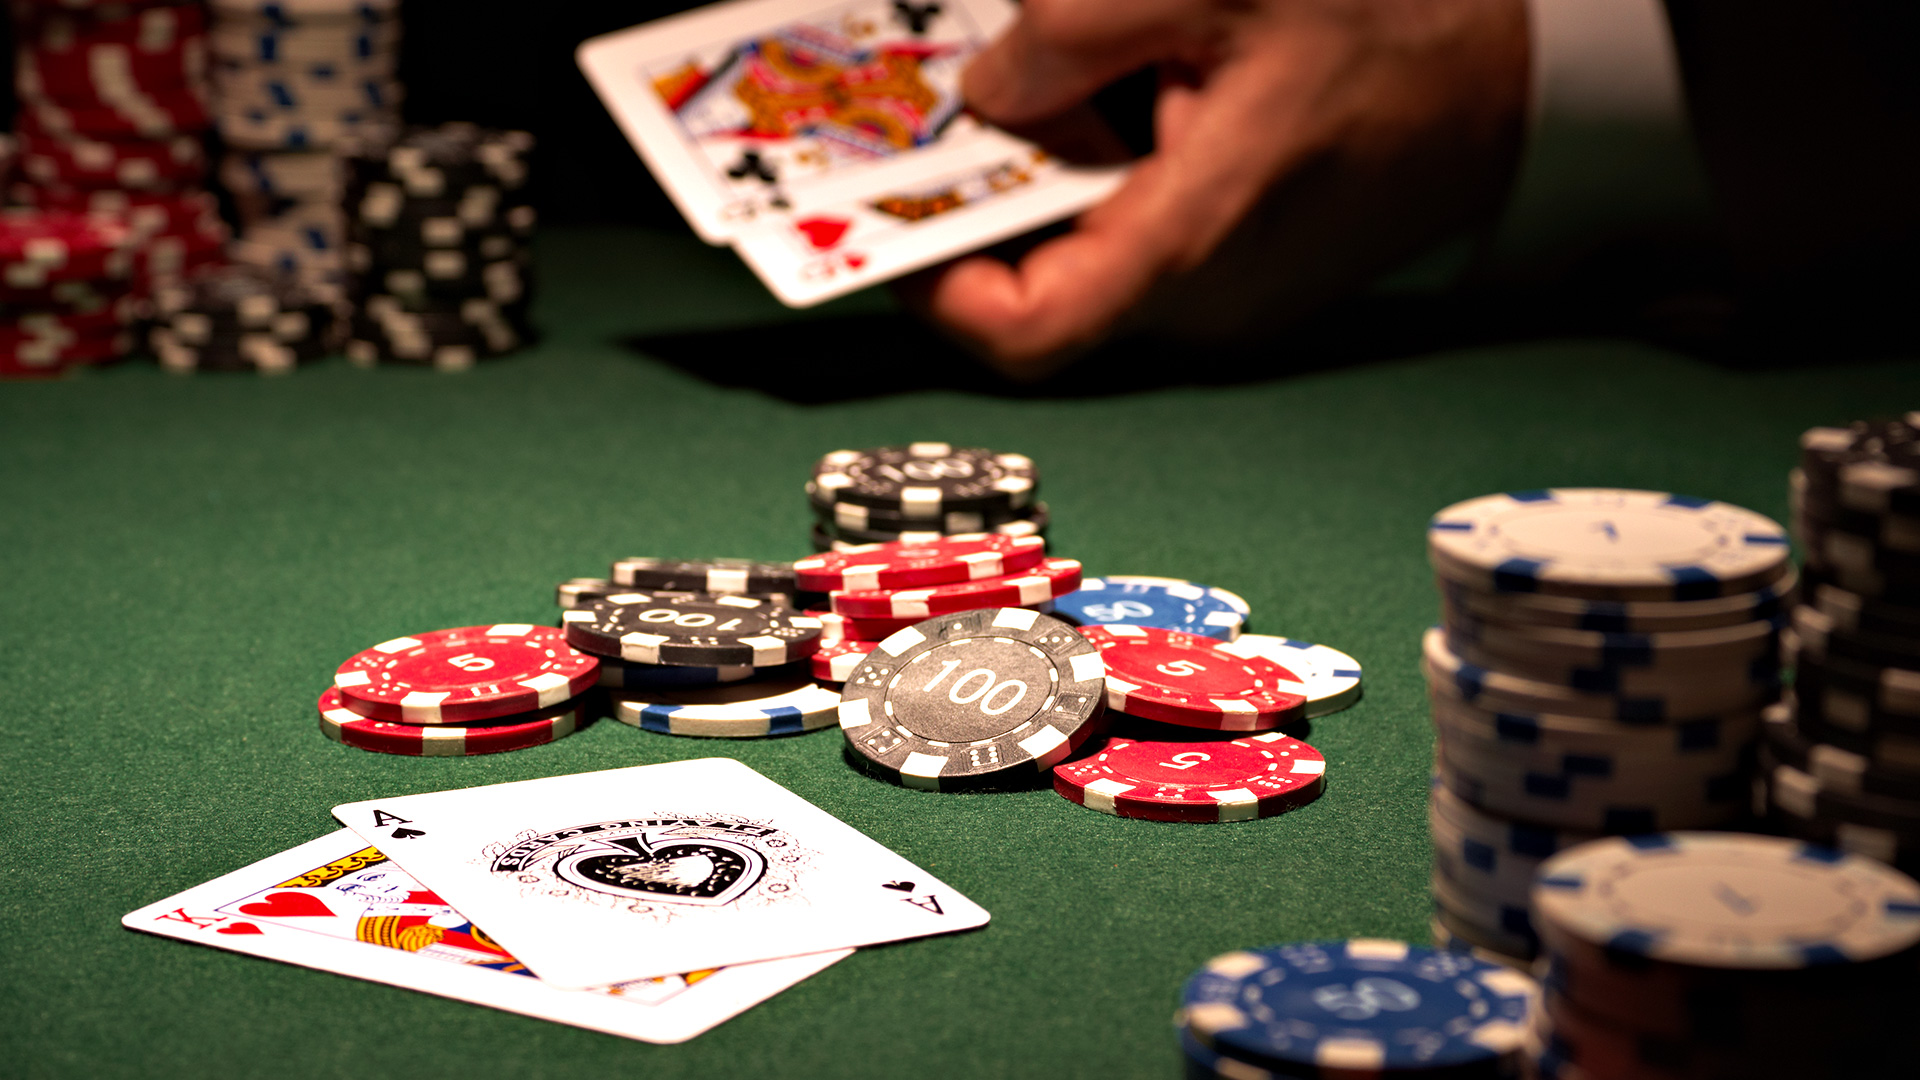 play games in the online casinos